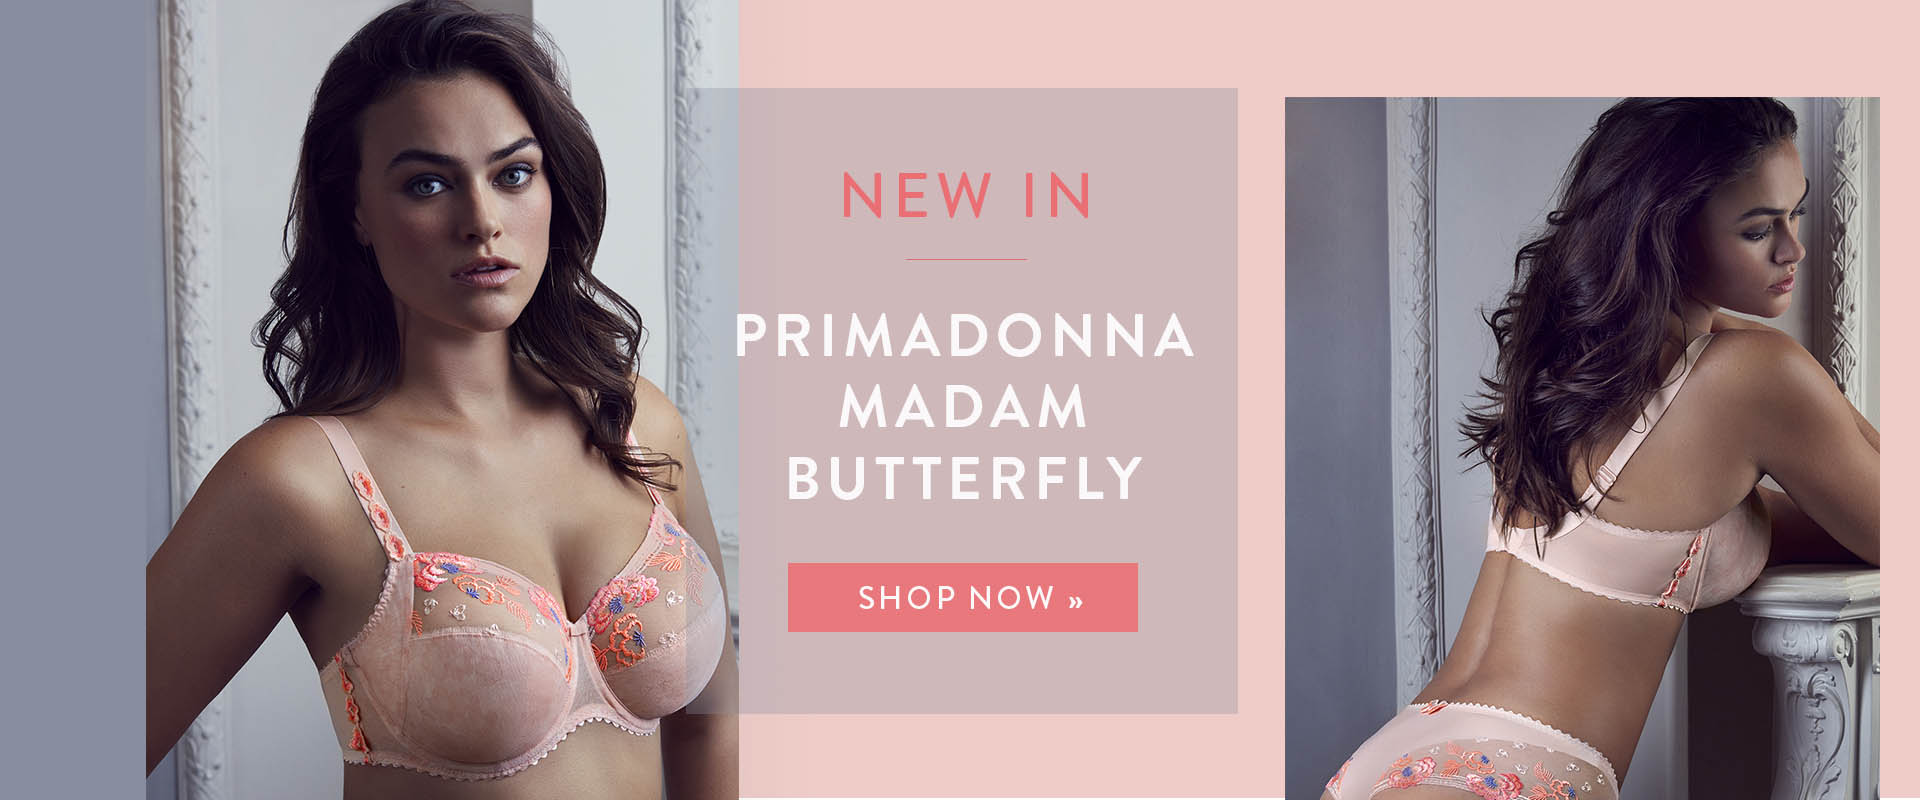 New In - Primadonna Madam Butterfly - Shop Now